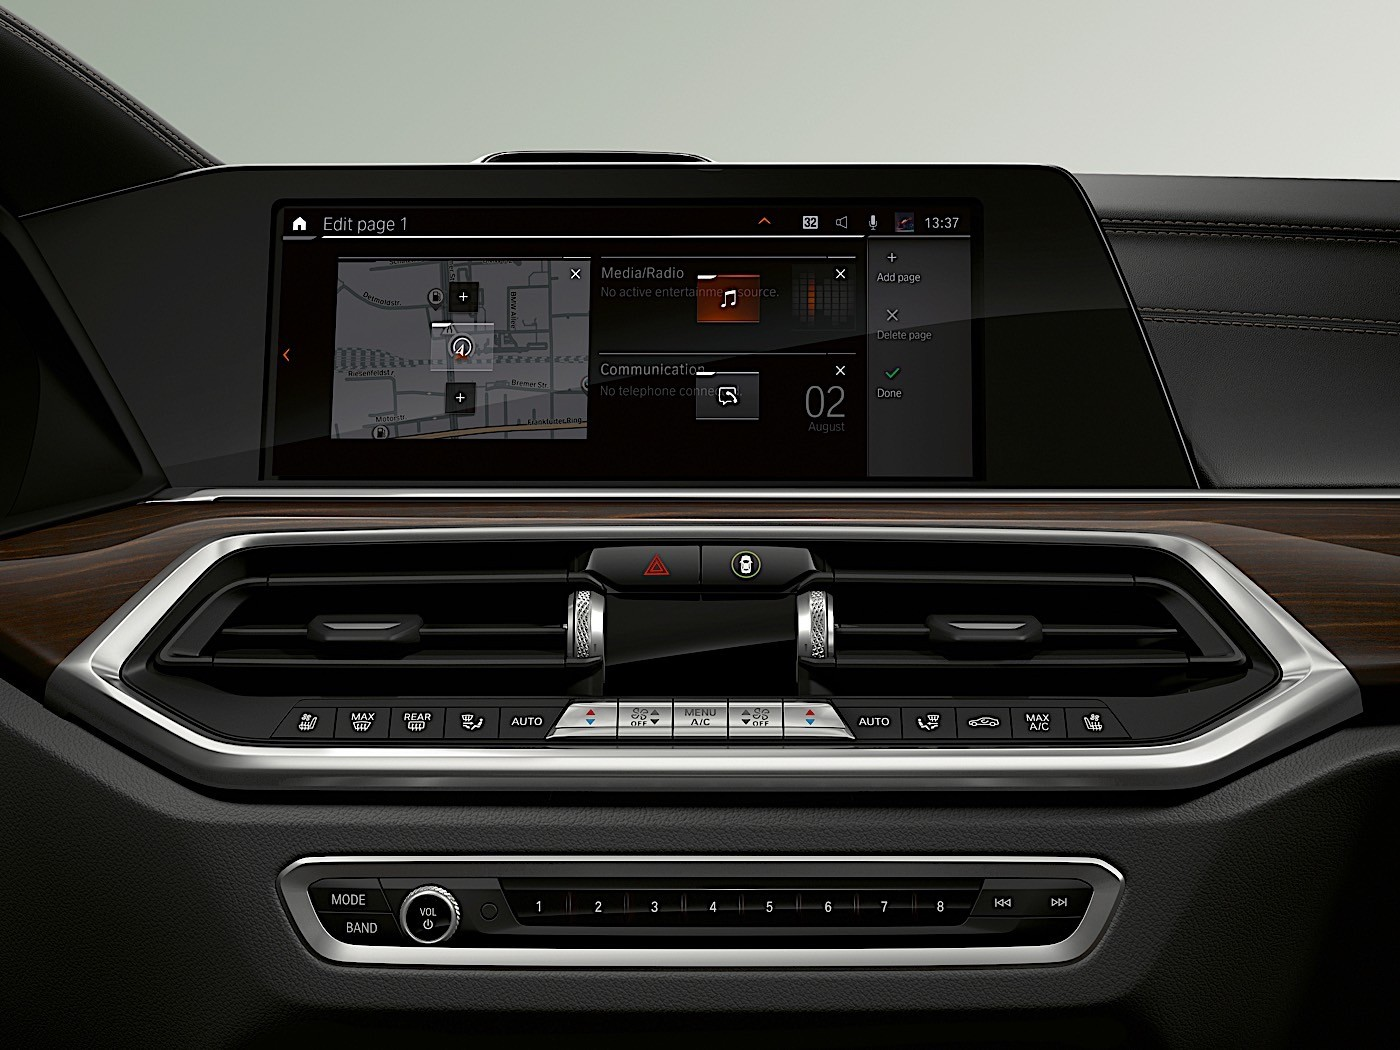 BMW Updates Cockpit Infotainment System, to Show it in Paris